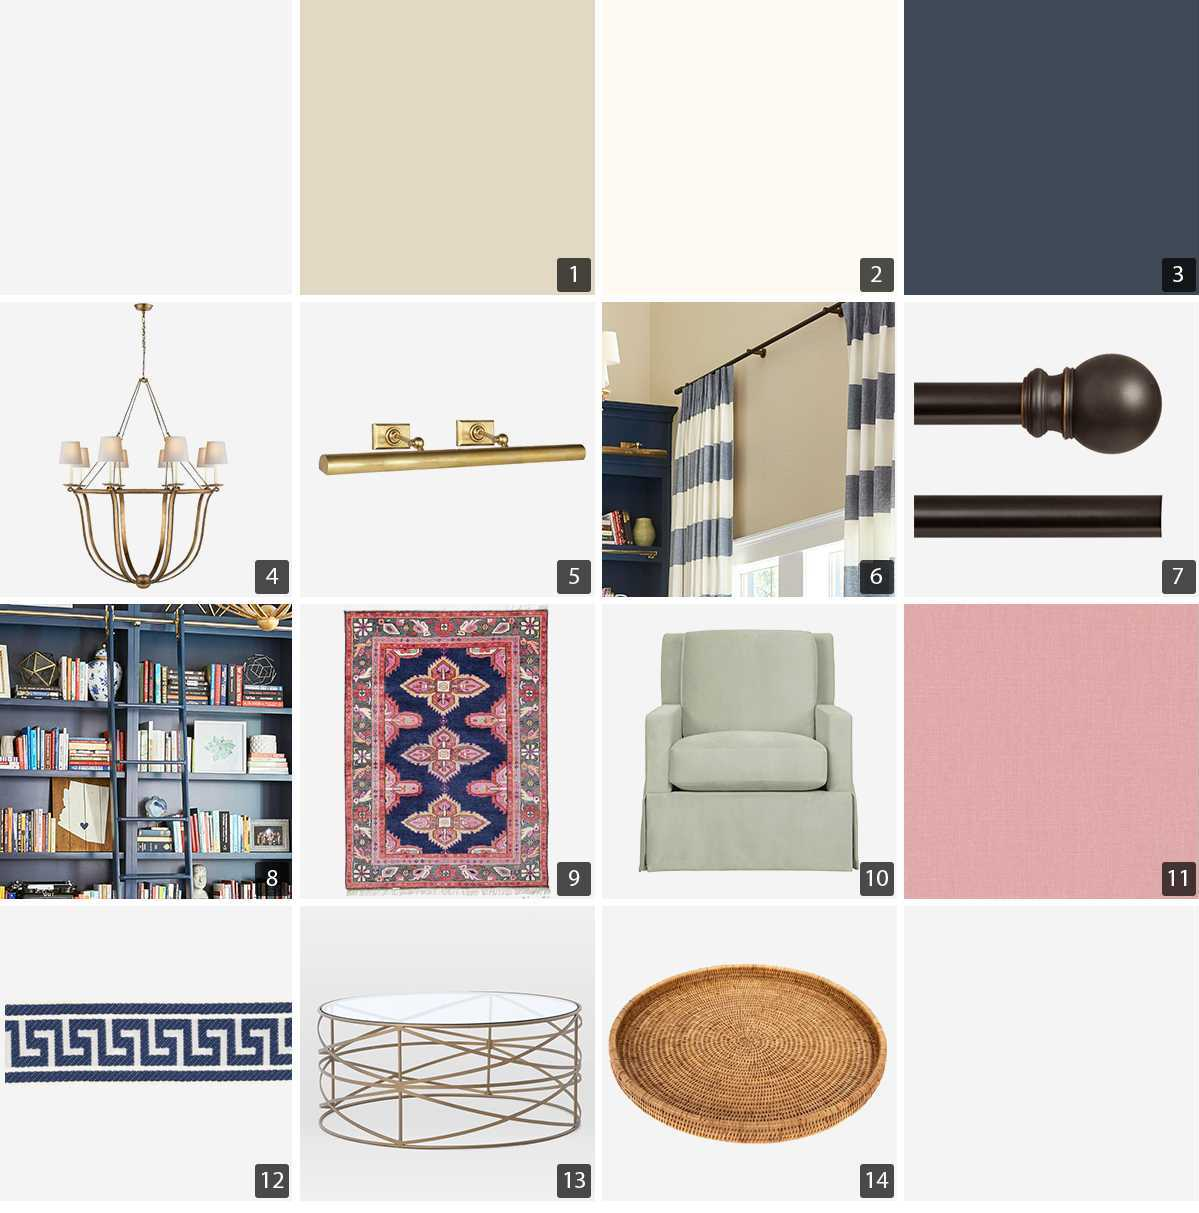 Collage of home products including picture light, rolling ladder, and rug photo